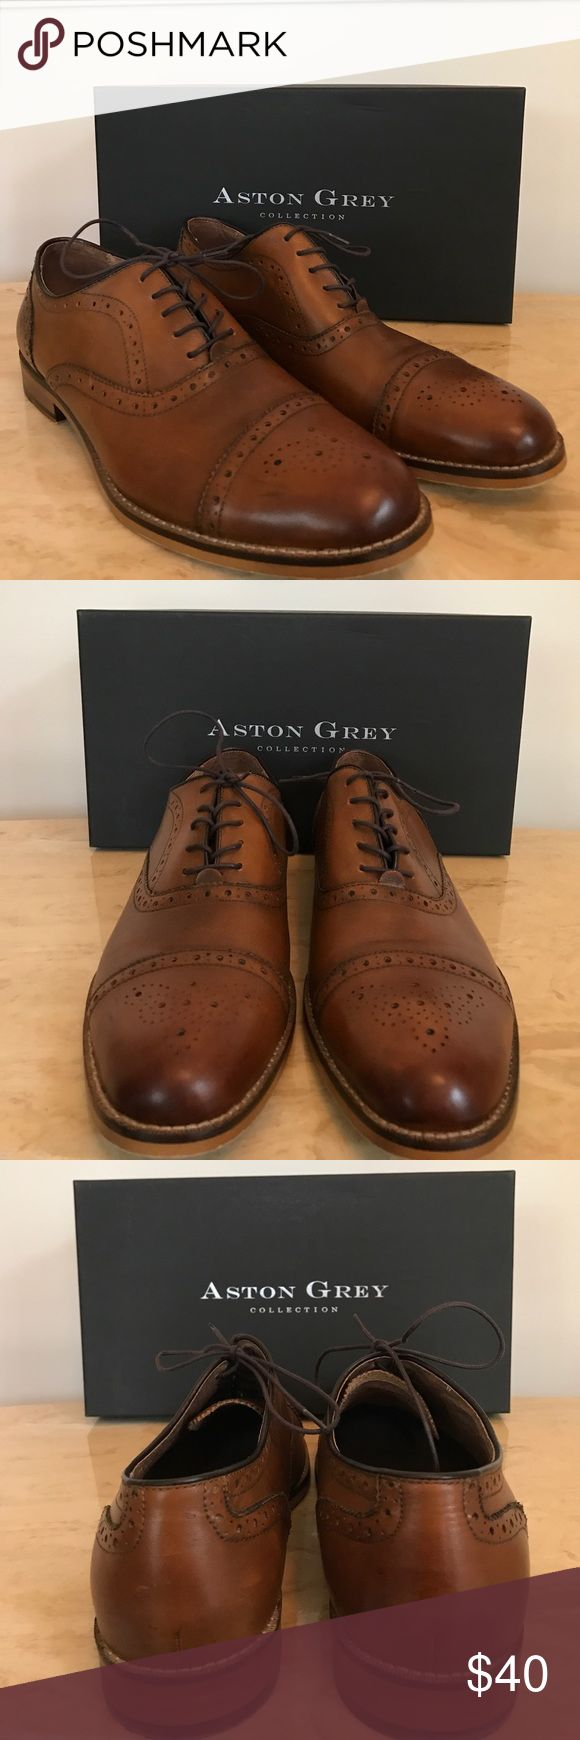 Mens Aston Grey Kobe Shoe Mens Aston Grey Kobe dress shoe in tan gently used. Yes, you called it...the hubby shares my shopping obsession 😉 Comes in original shoebox. Make an offer or bundle for additional savings. Aston Grey Shoes Oxfords & Derbys